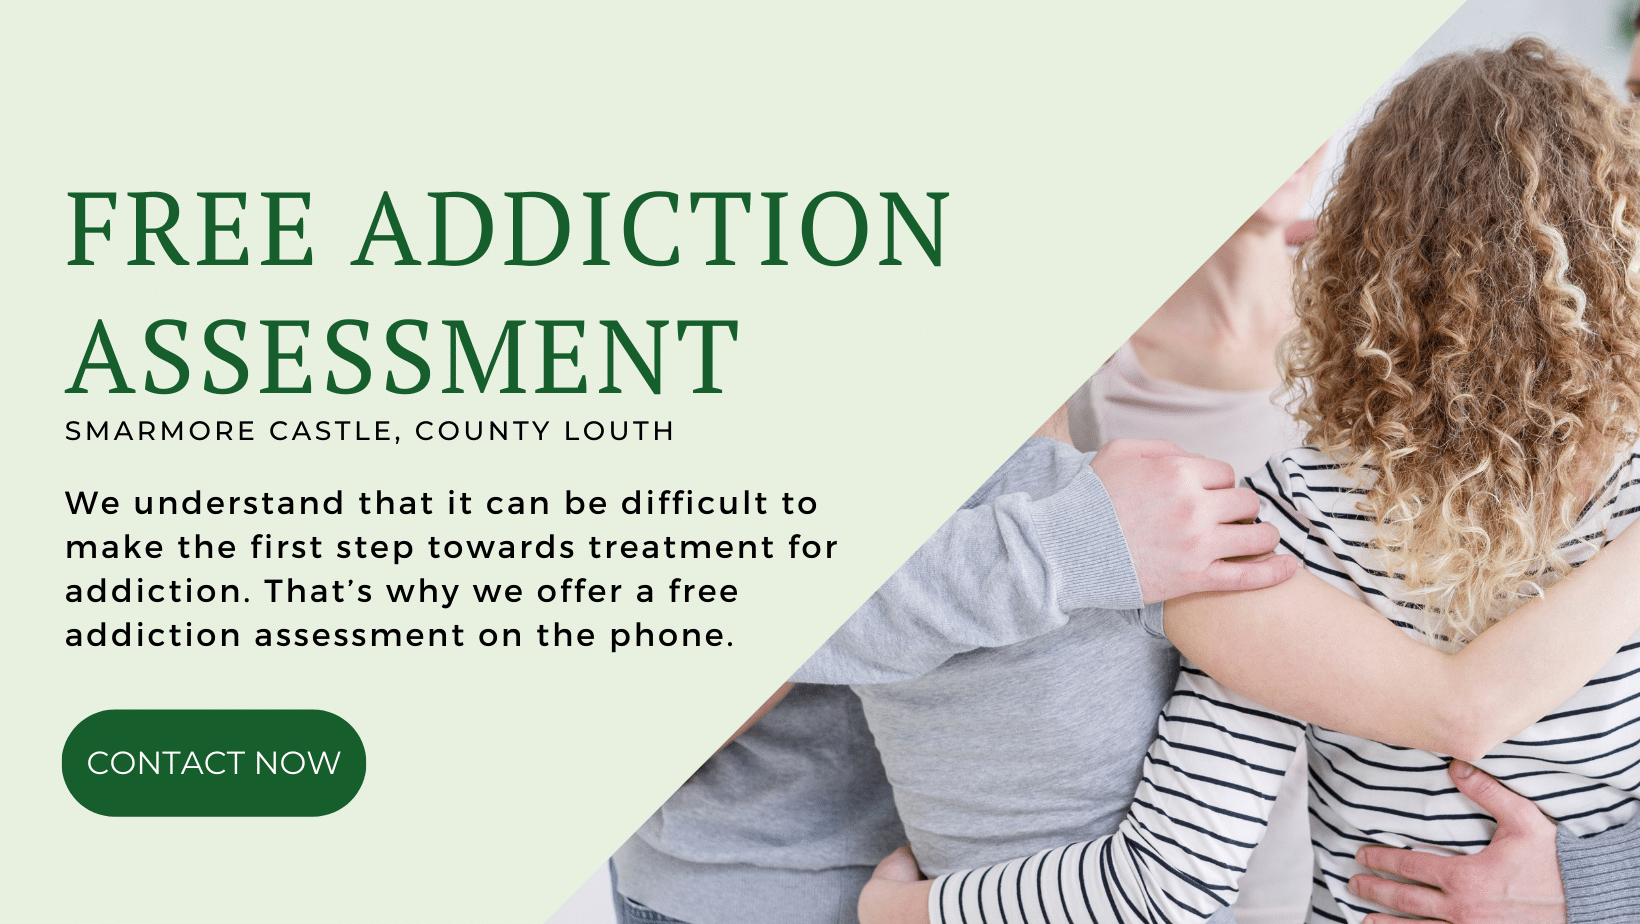 Free addiction assesments are now avialble at Smarmore